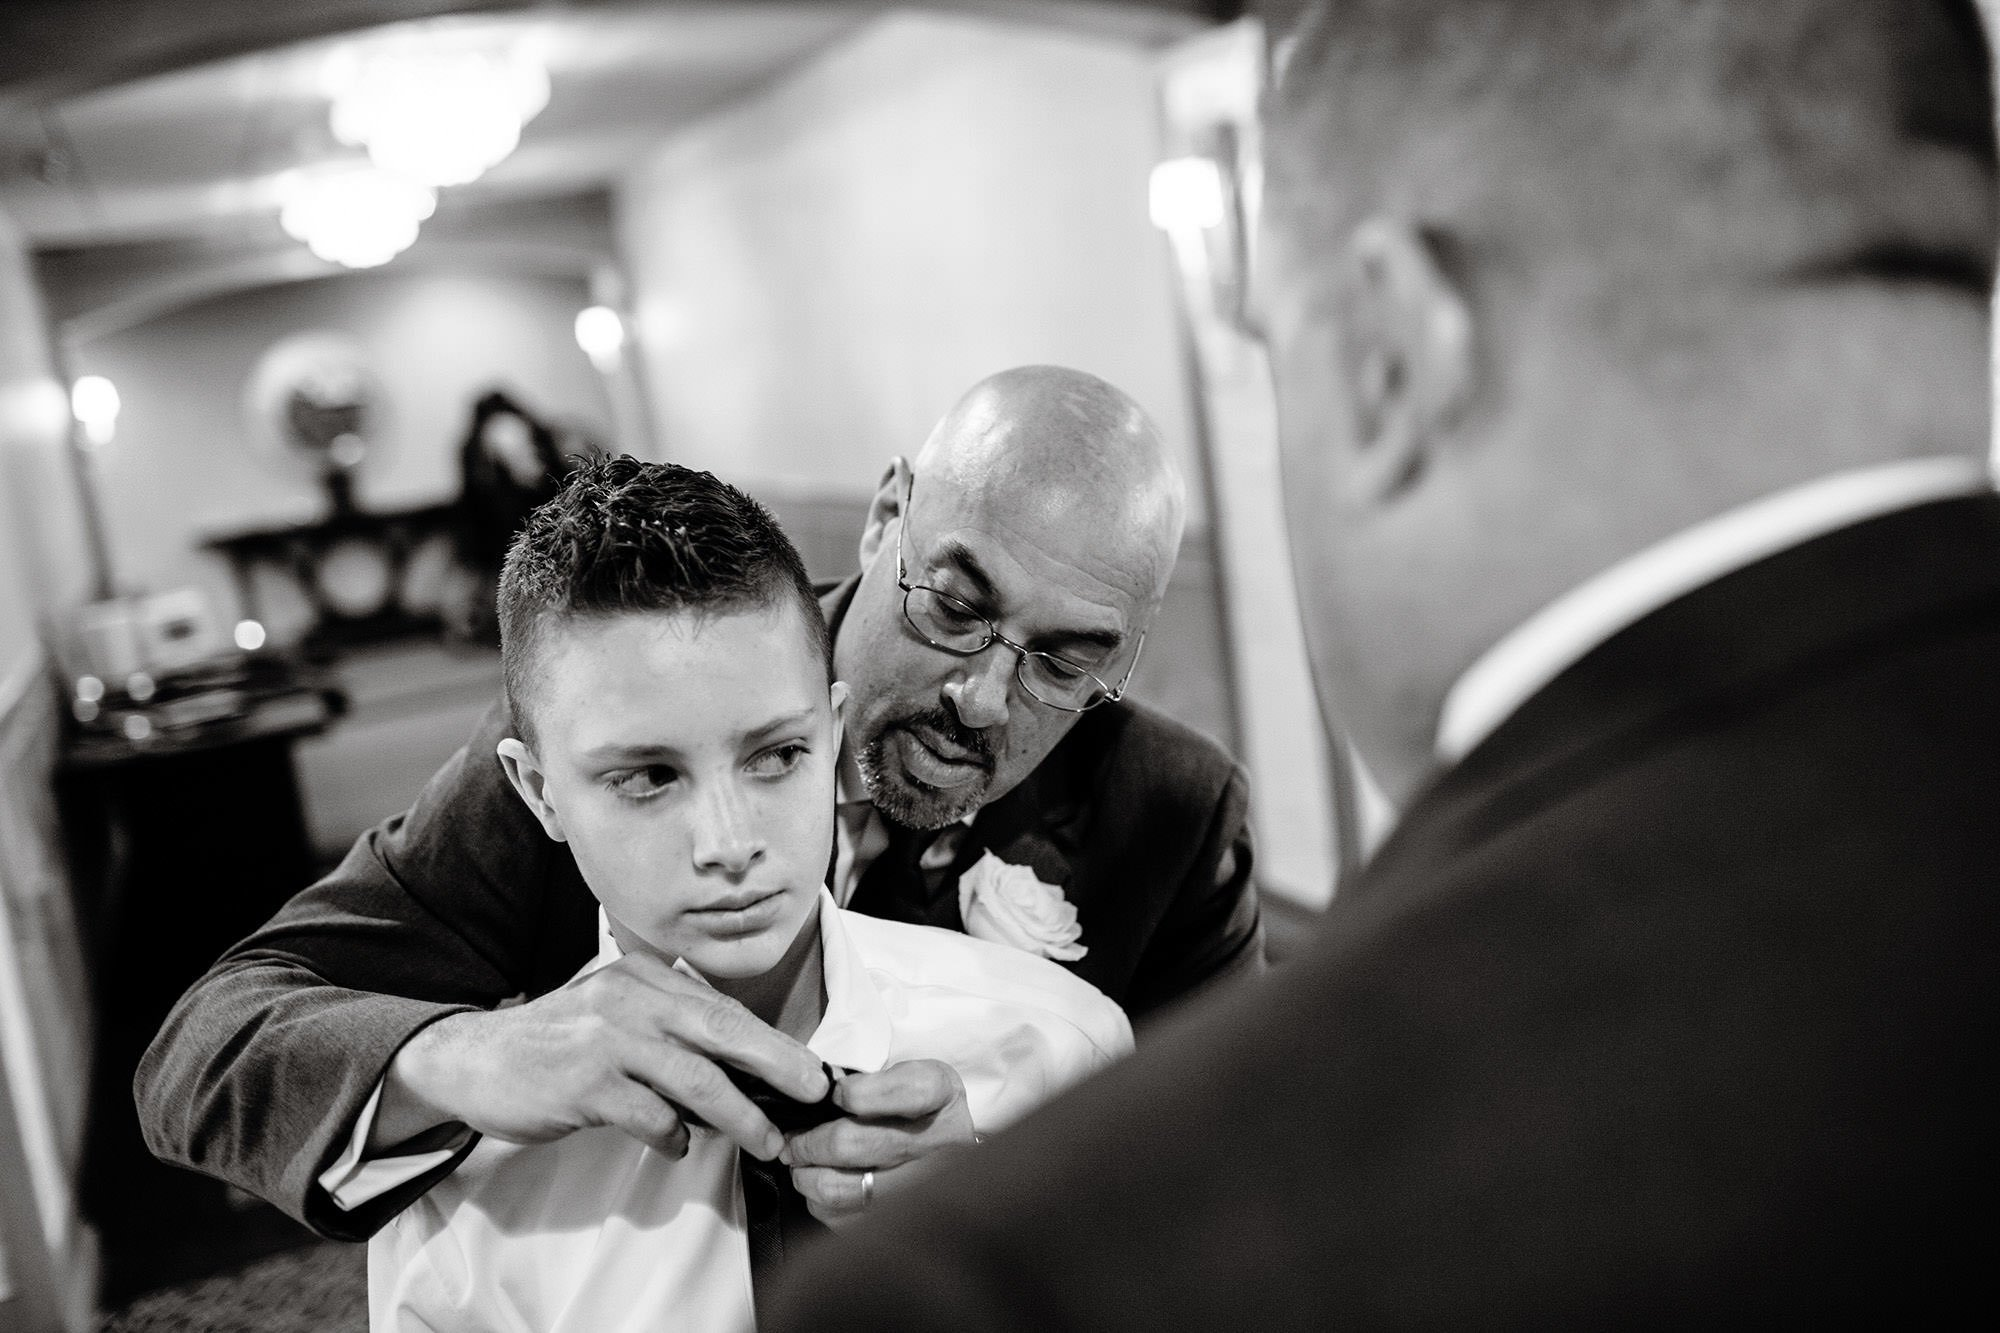 The father of the bride helps a young man put on his tie.